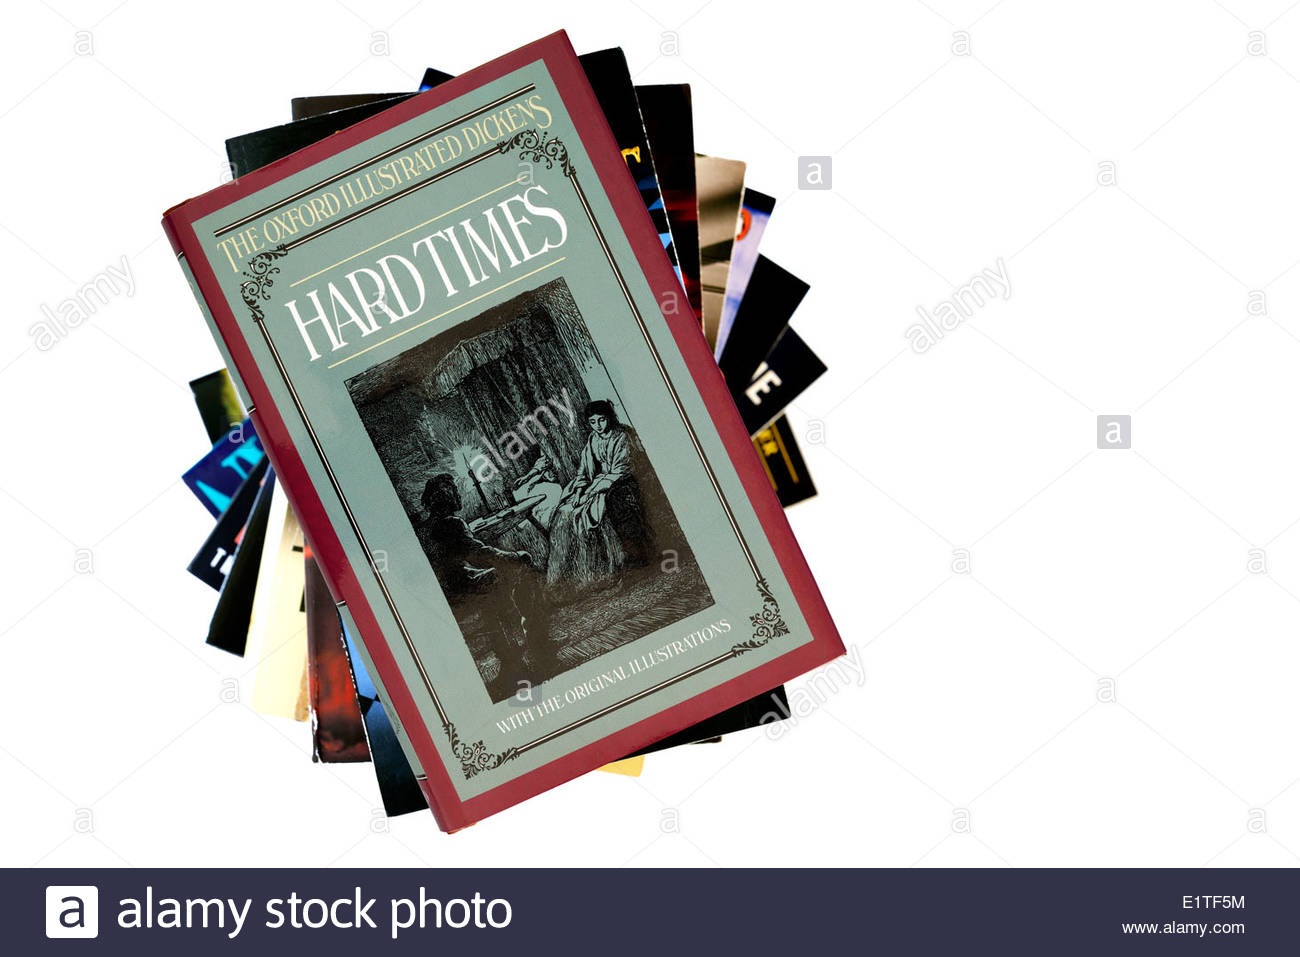 Charles Dickens novel, Hard Times, hardback title stacked used books, England - Stock Image